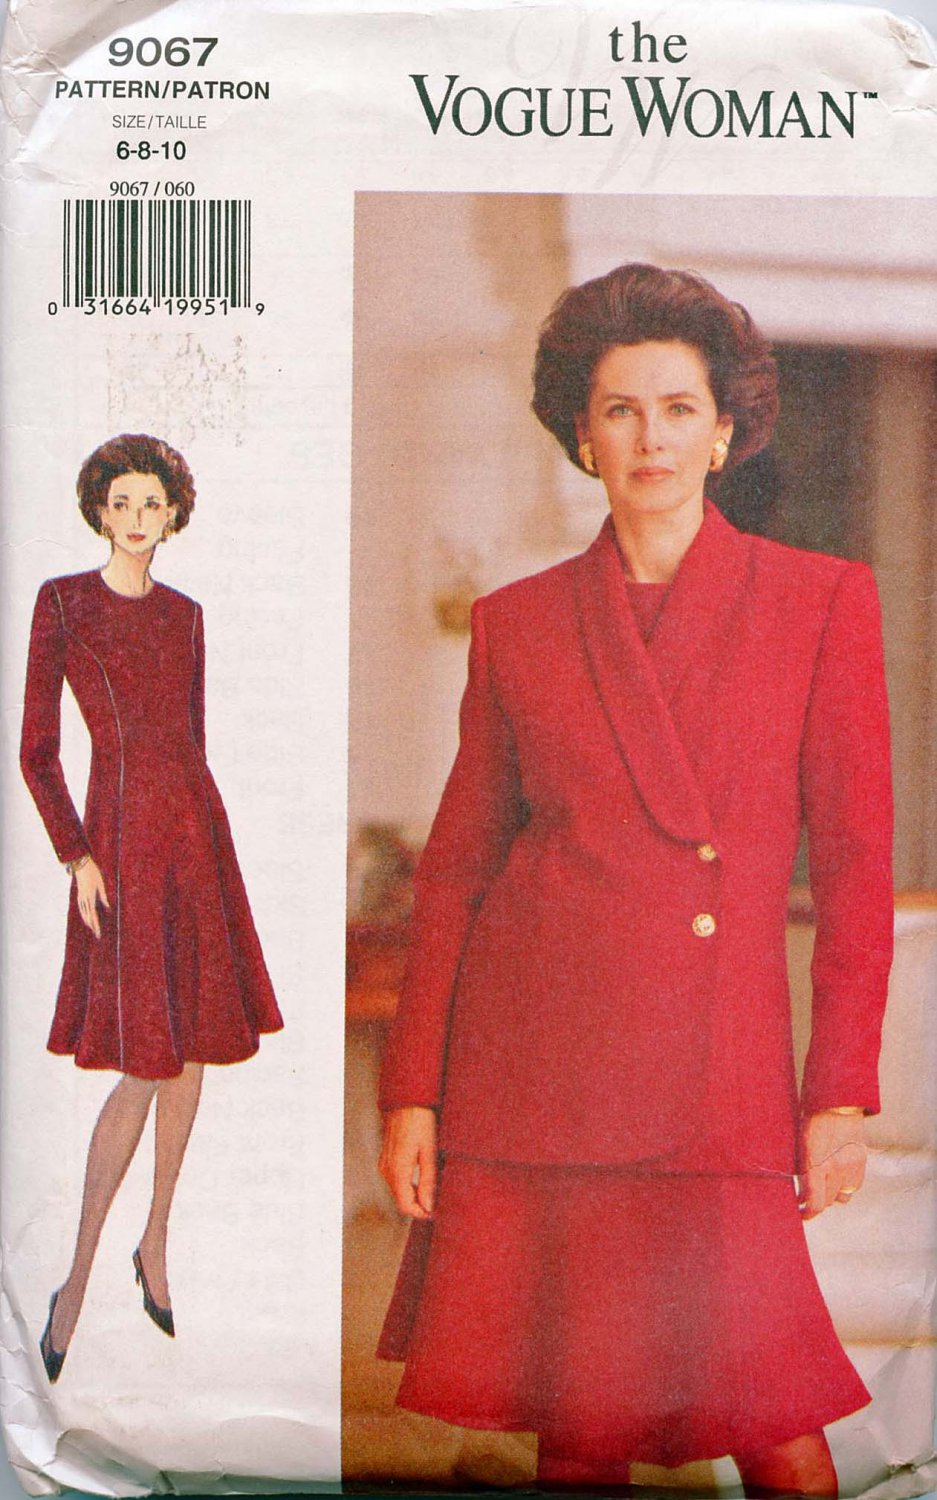 Vogue pattern Misses Jacket and Dress pattern NO. 9067